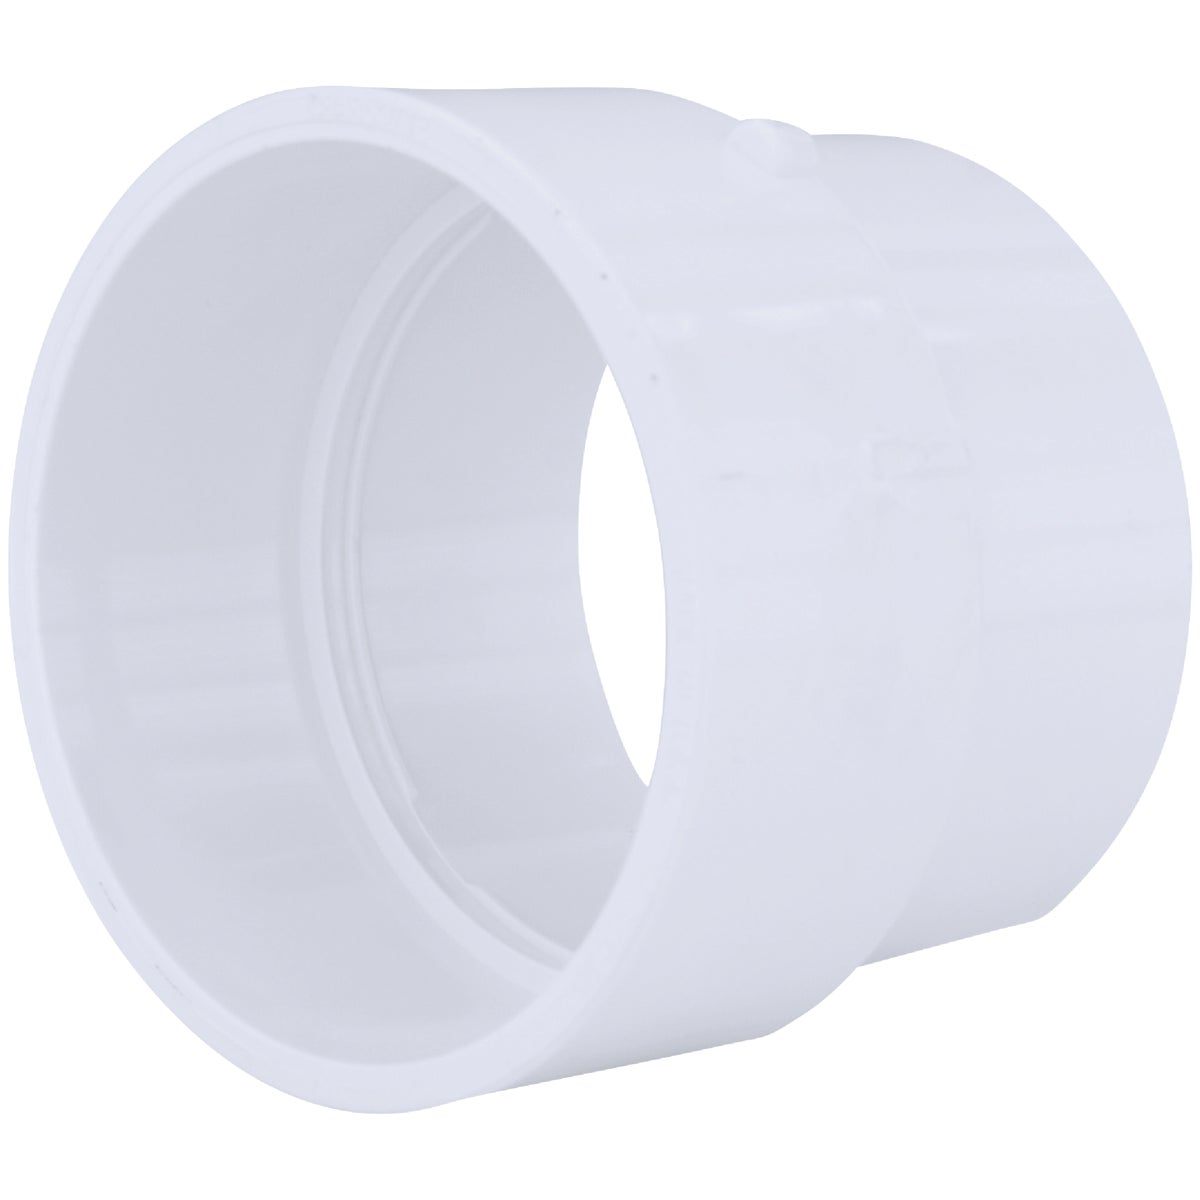 4X4 ADAPTER COUPLING - 71544 by Genova Inc  Pvc Dwv